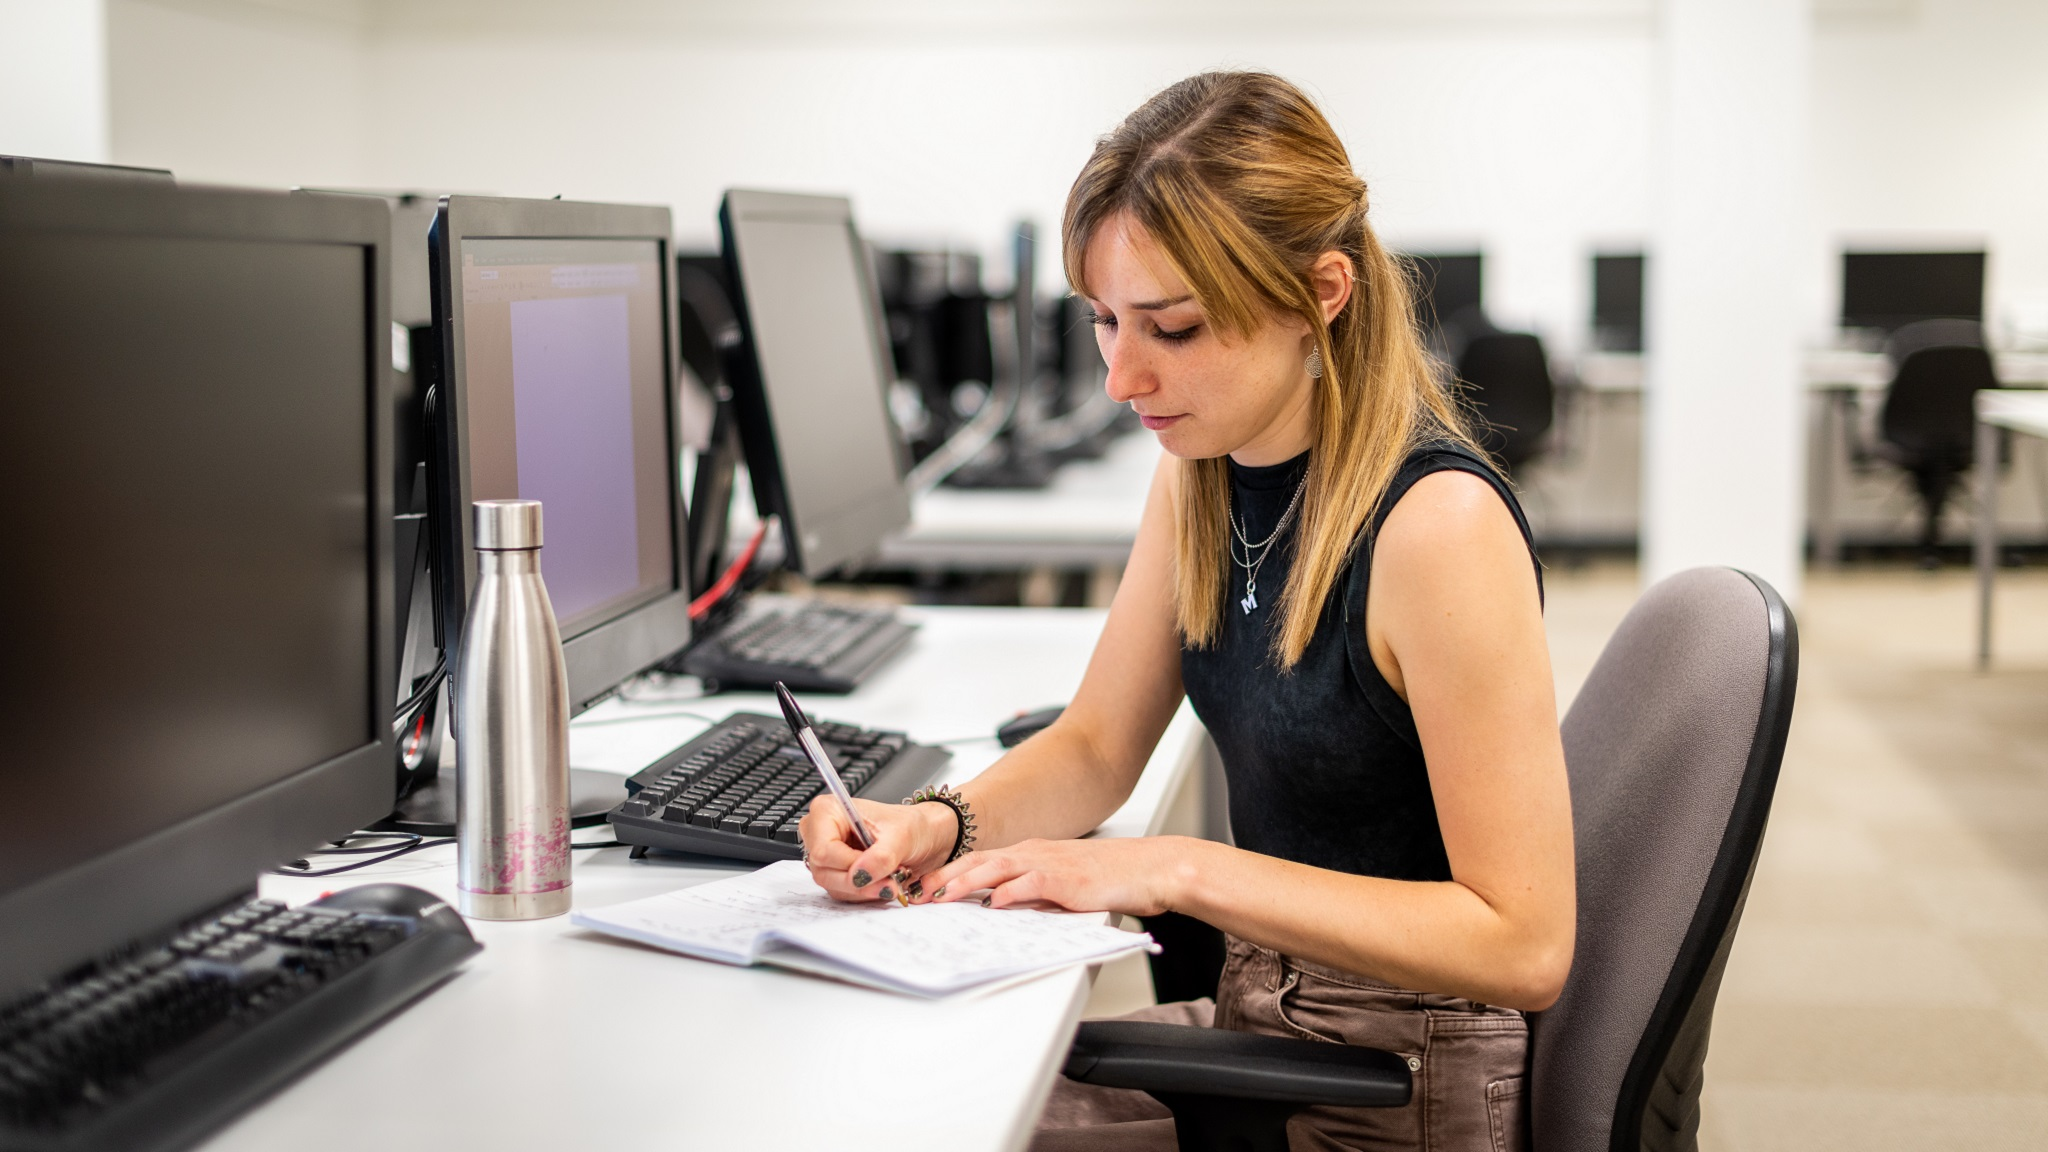 Student working at a workstation on campus.